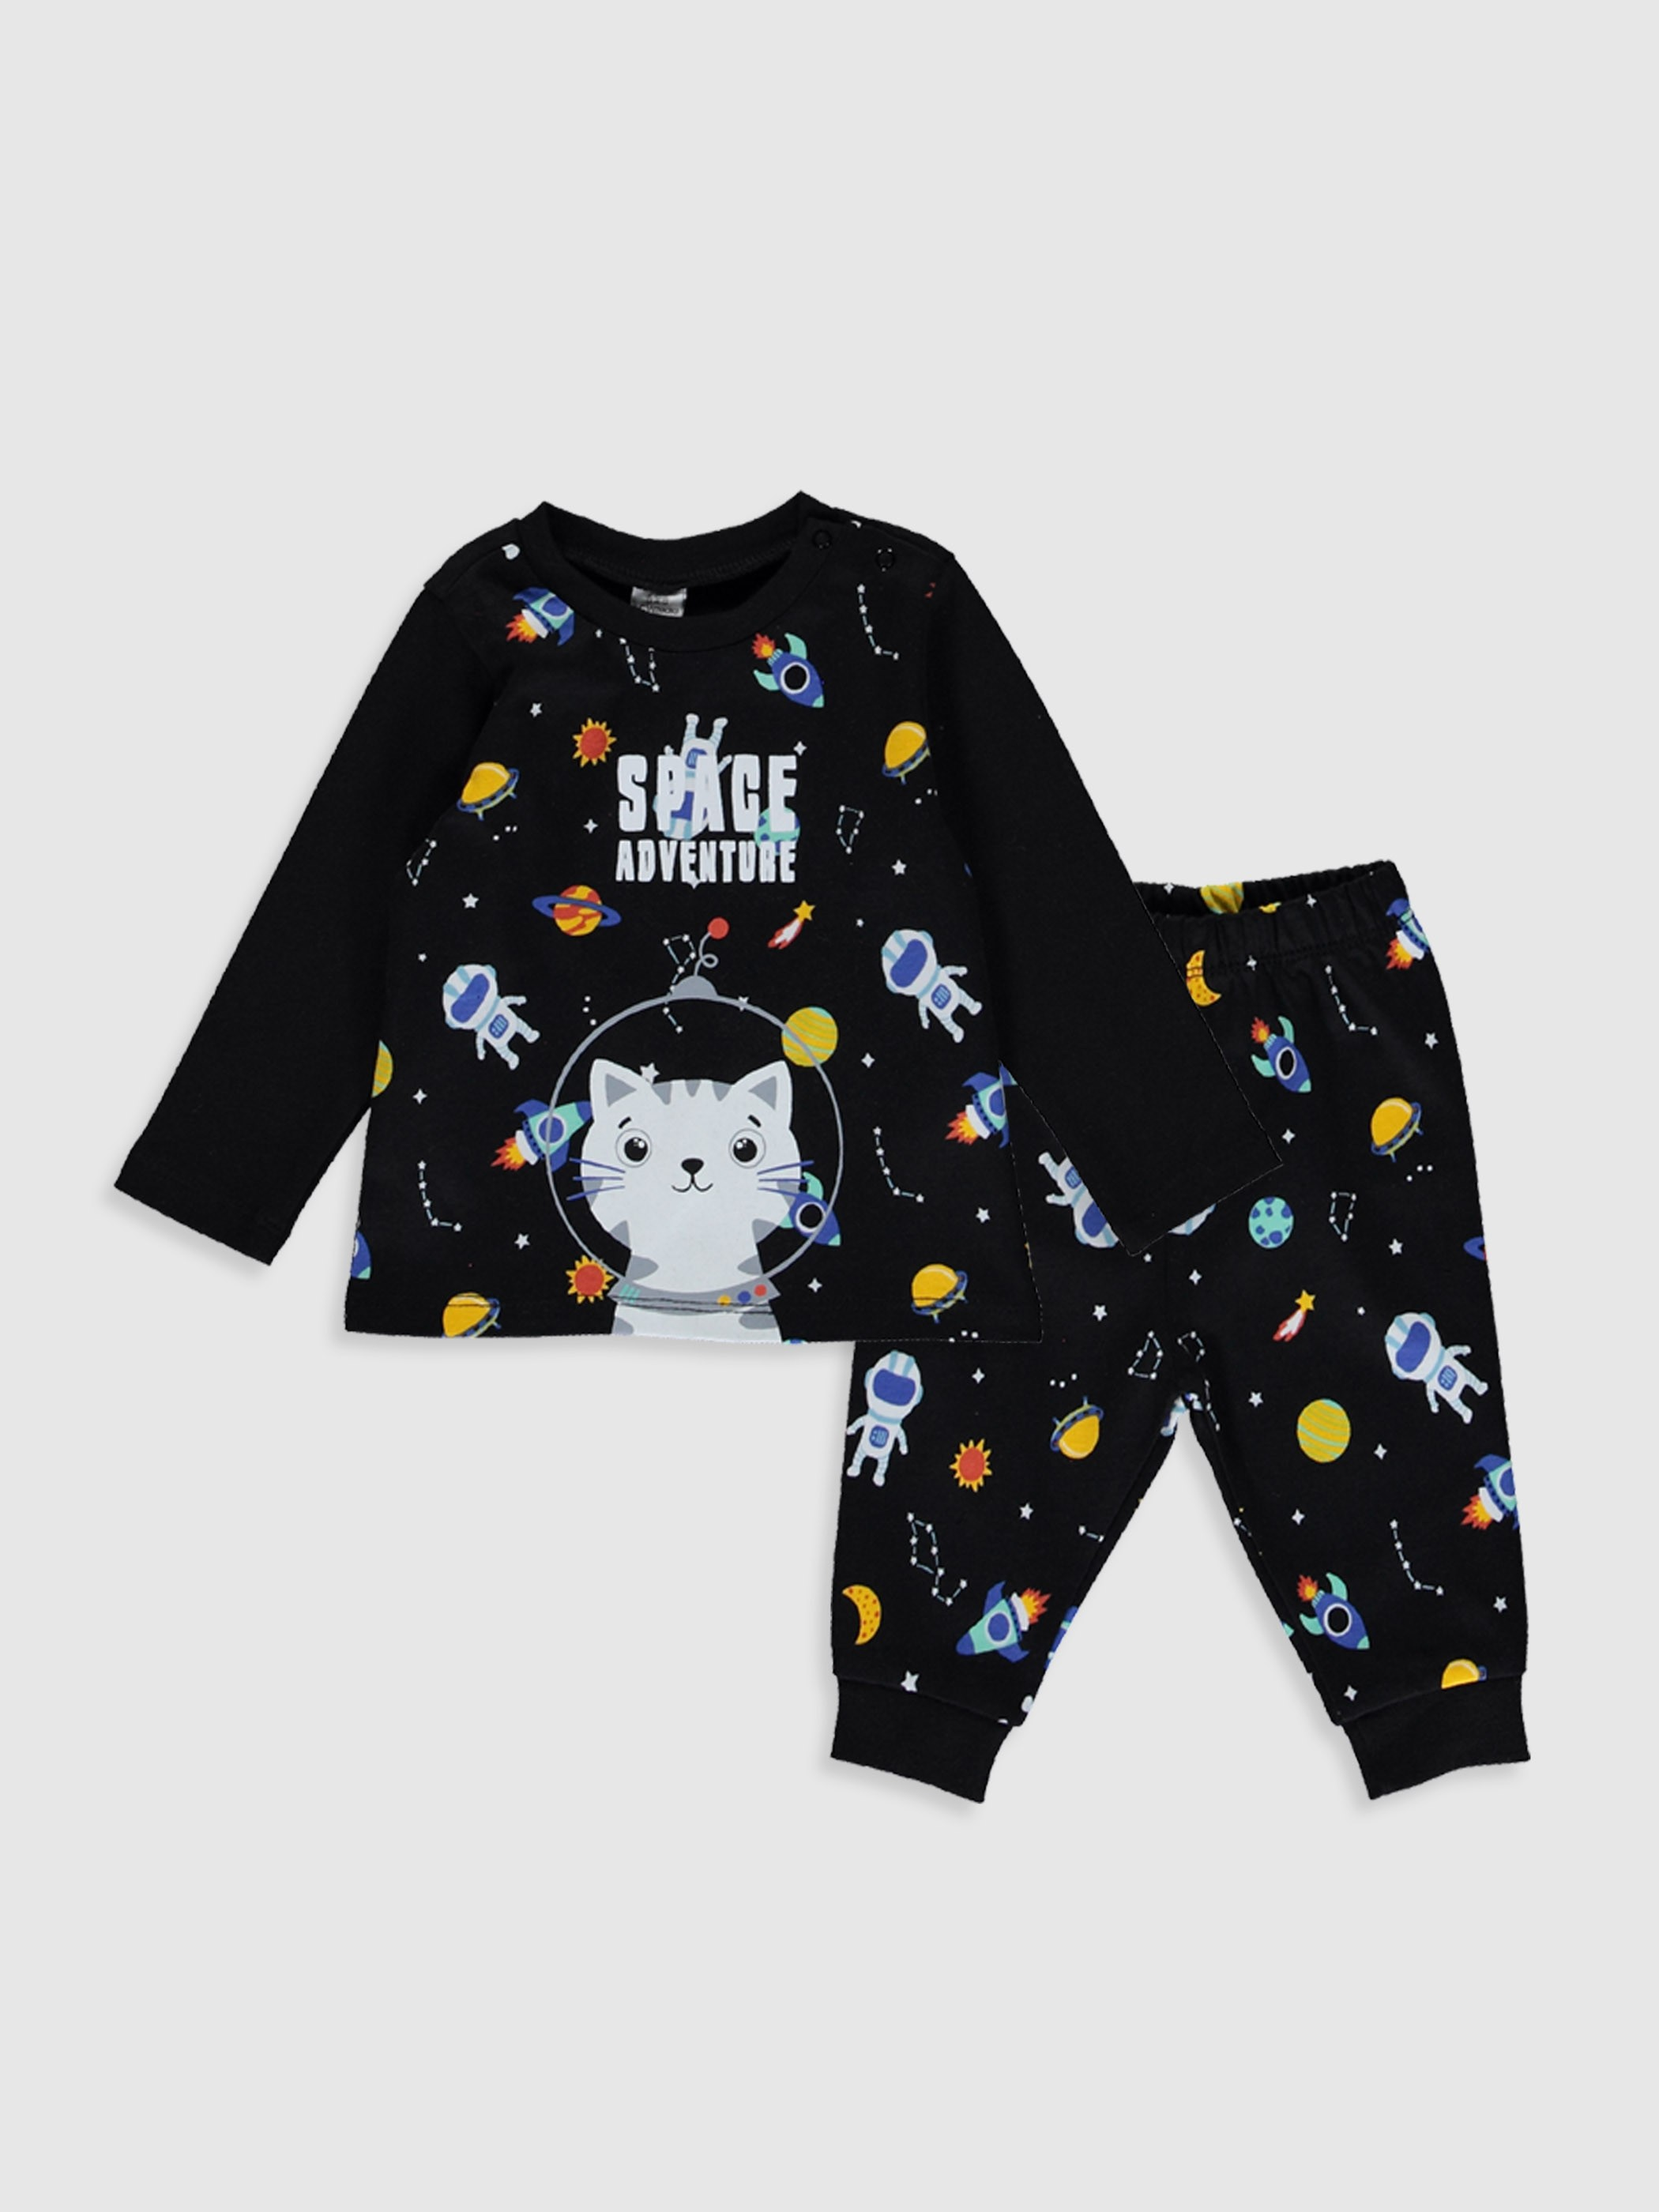 BLACK - Baby Boy's Printed Cotton Pyjamas Set - 9WI155Z1